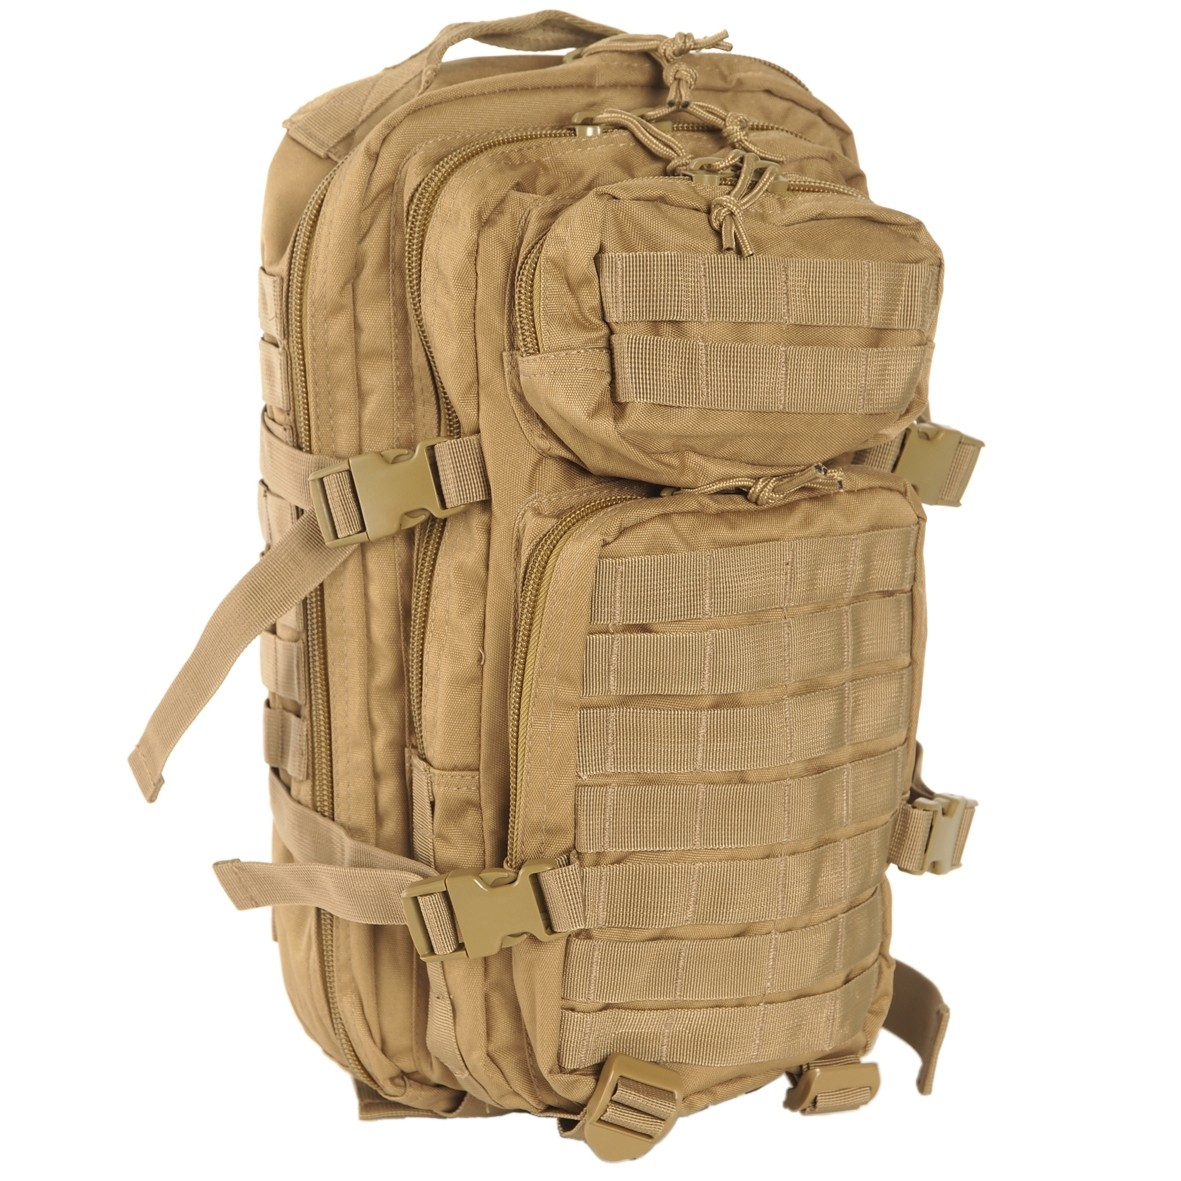 US Assault Pack, 20 L, coyote